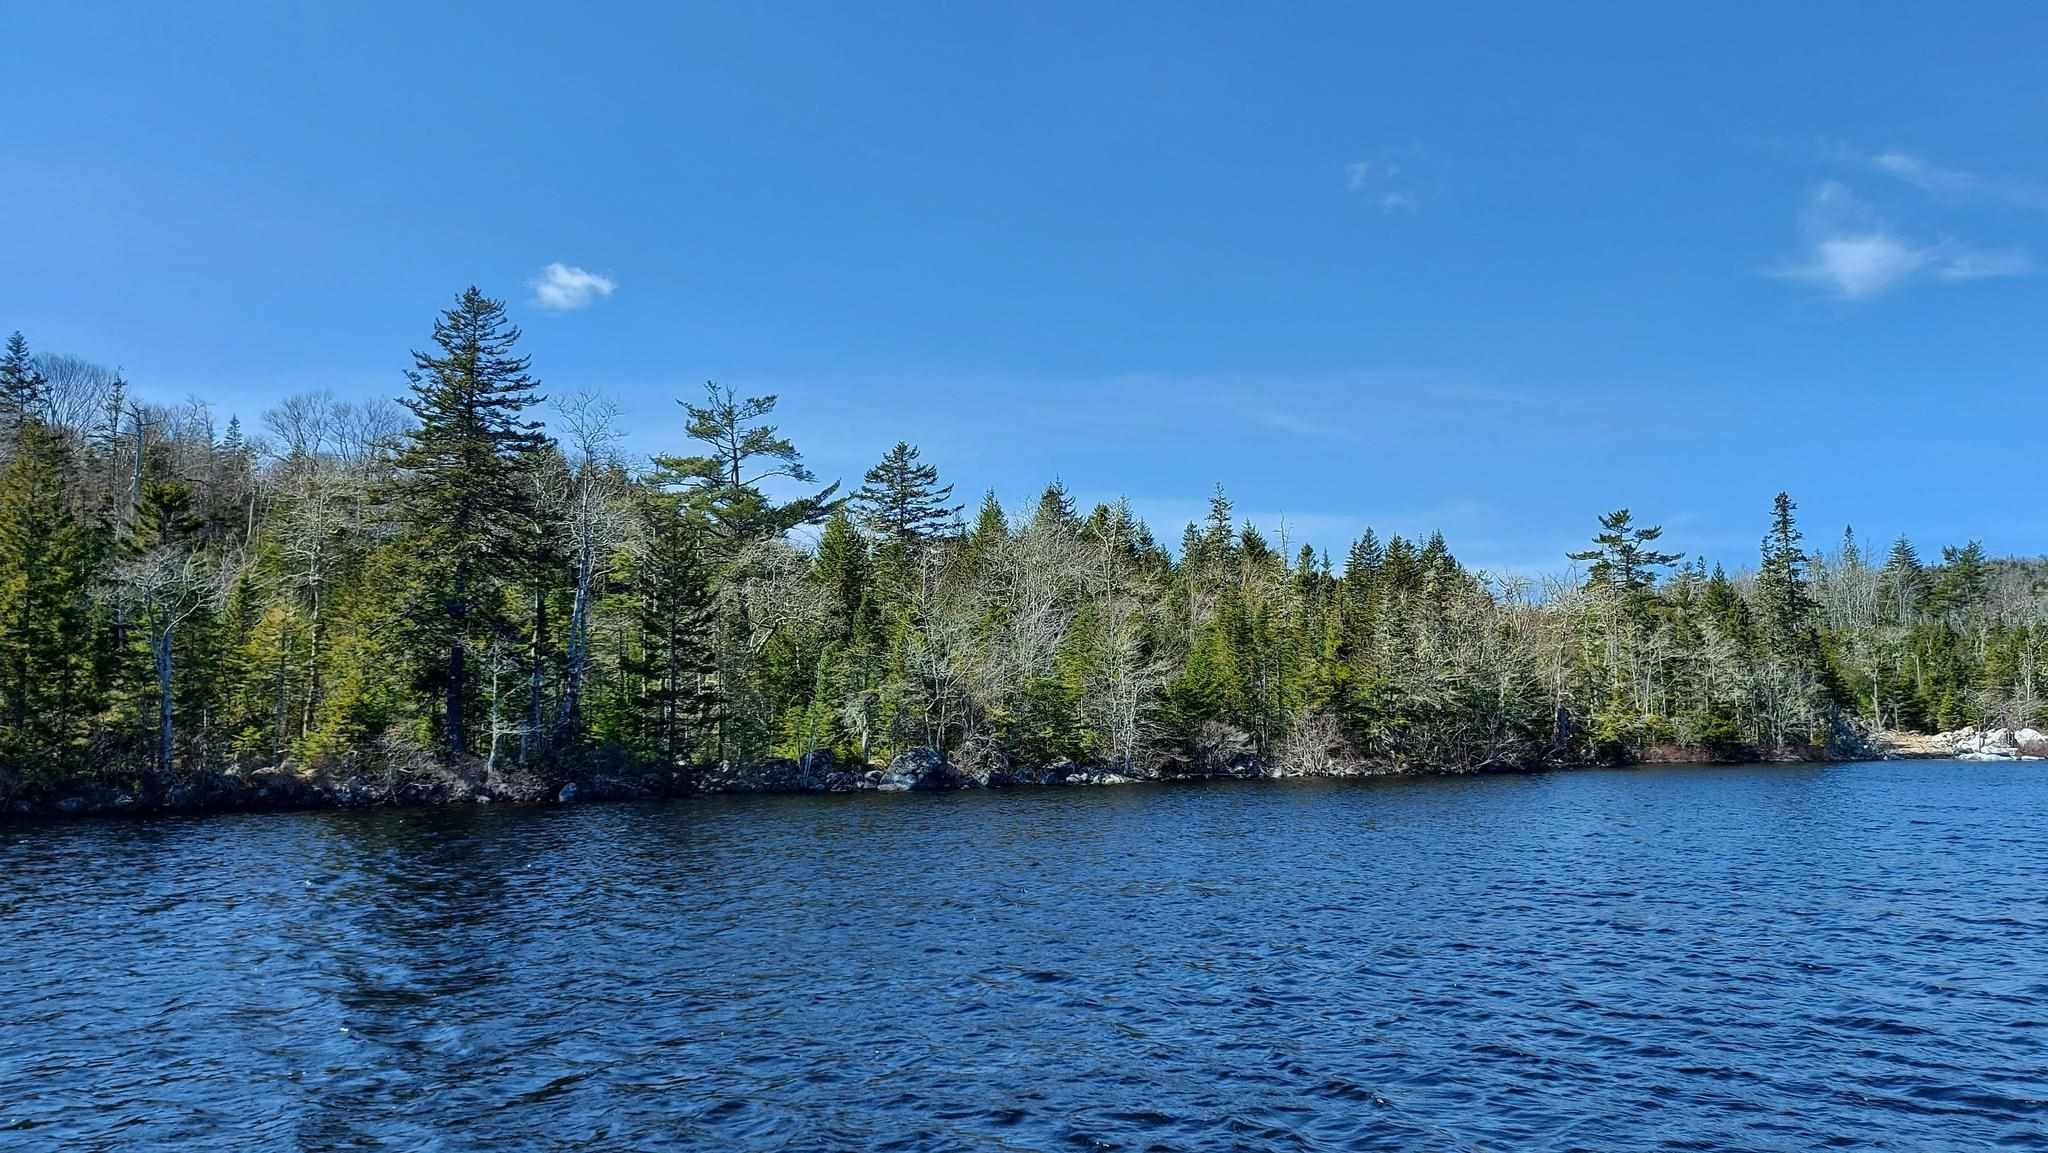 Main Photo: Lot 2 1190 Lake Charlotte Way in Upper Lakeville: 35-Halifax County East Vacant Land for sale (Halifax-Dartmouth)  : MLS®# 202113705